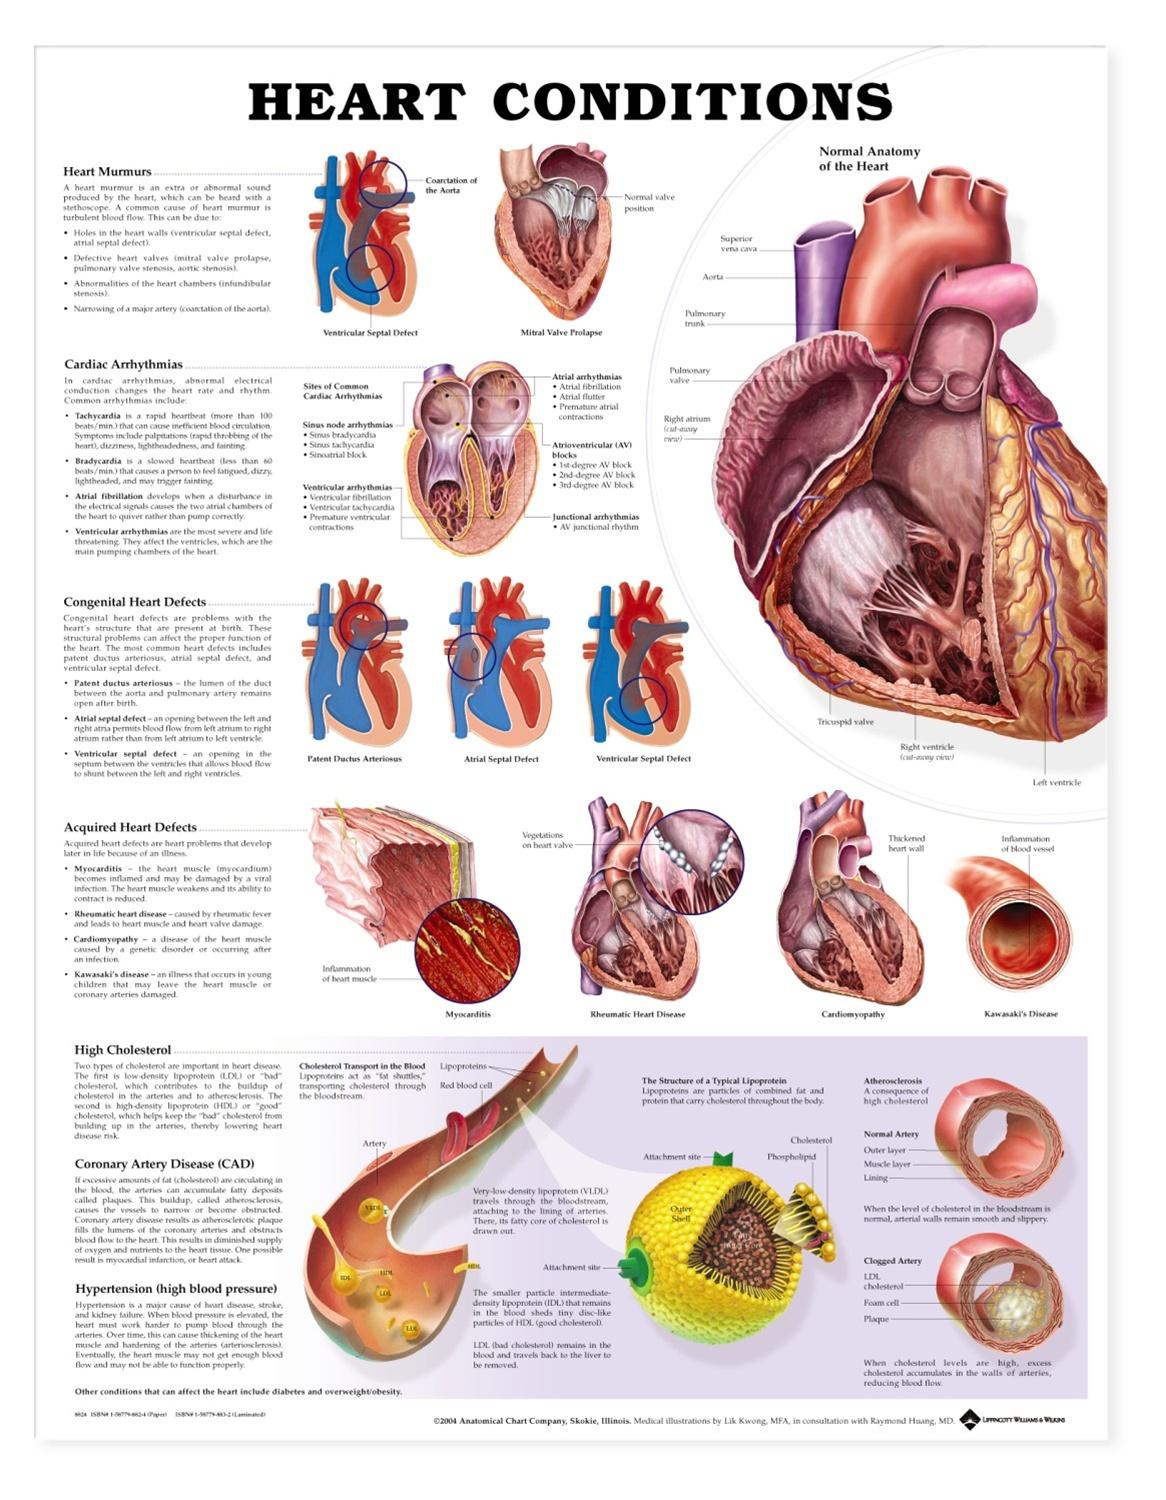 Heart Conditions Anatomical Chart - Anatomy Models and Anatomical Charts